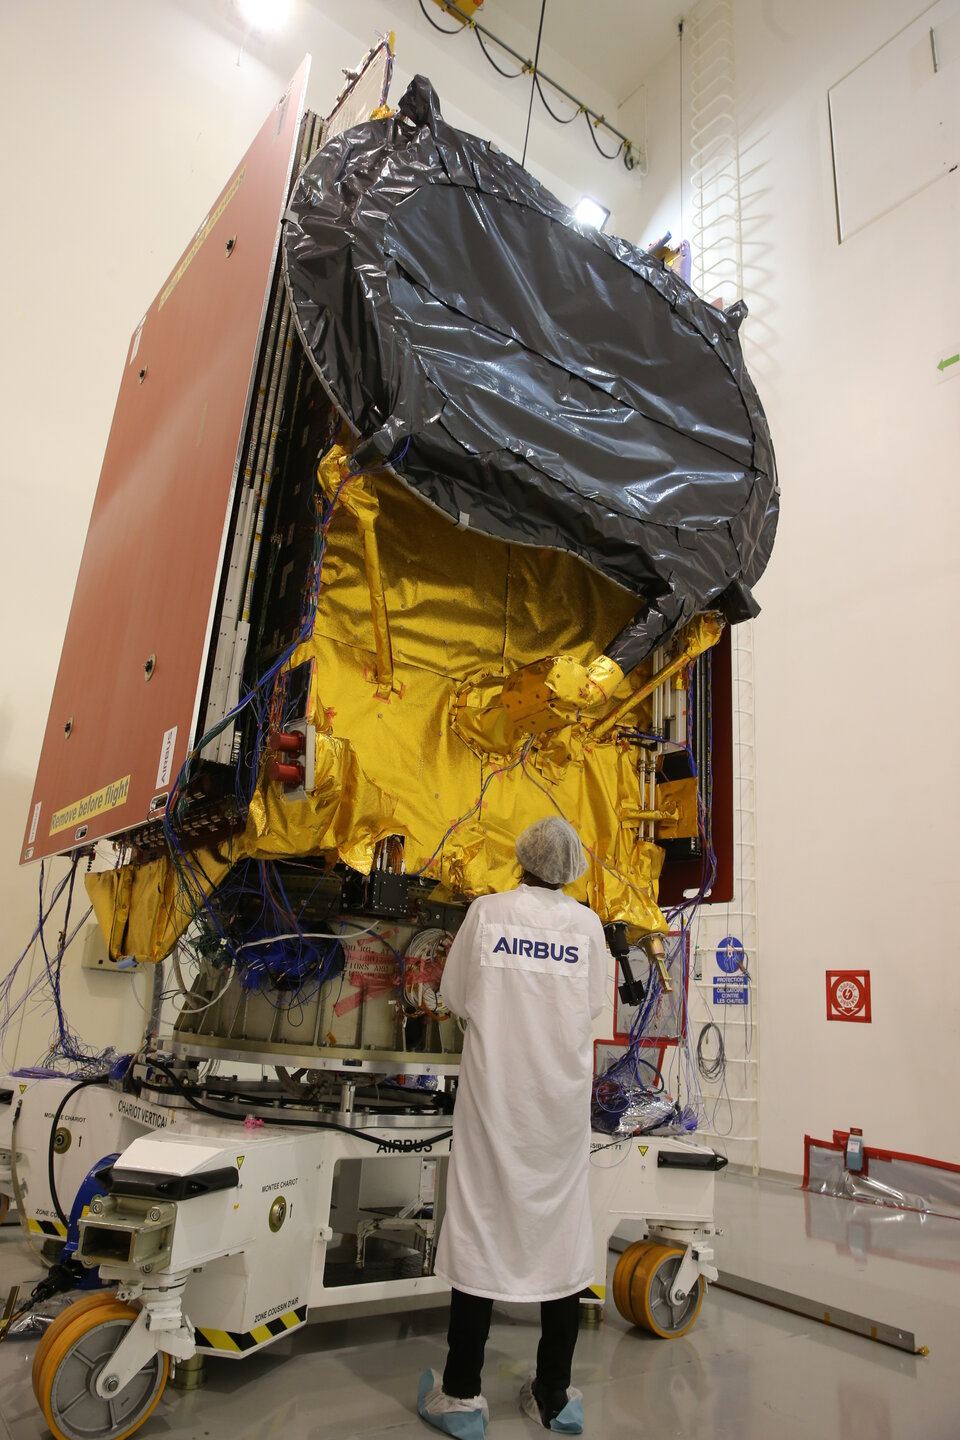 The satellite was shaken to simulate the effects of launch